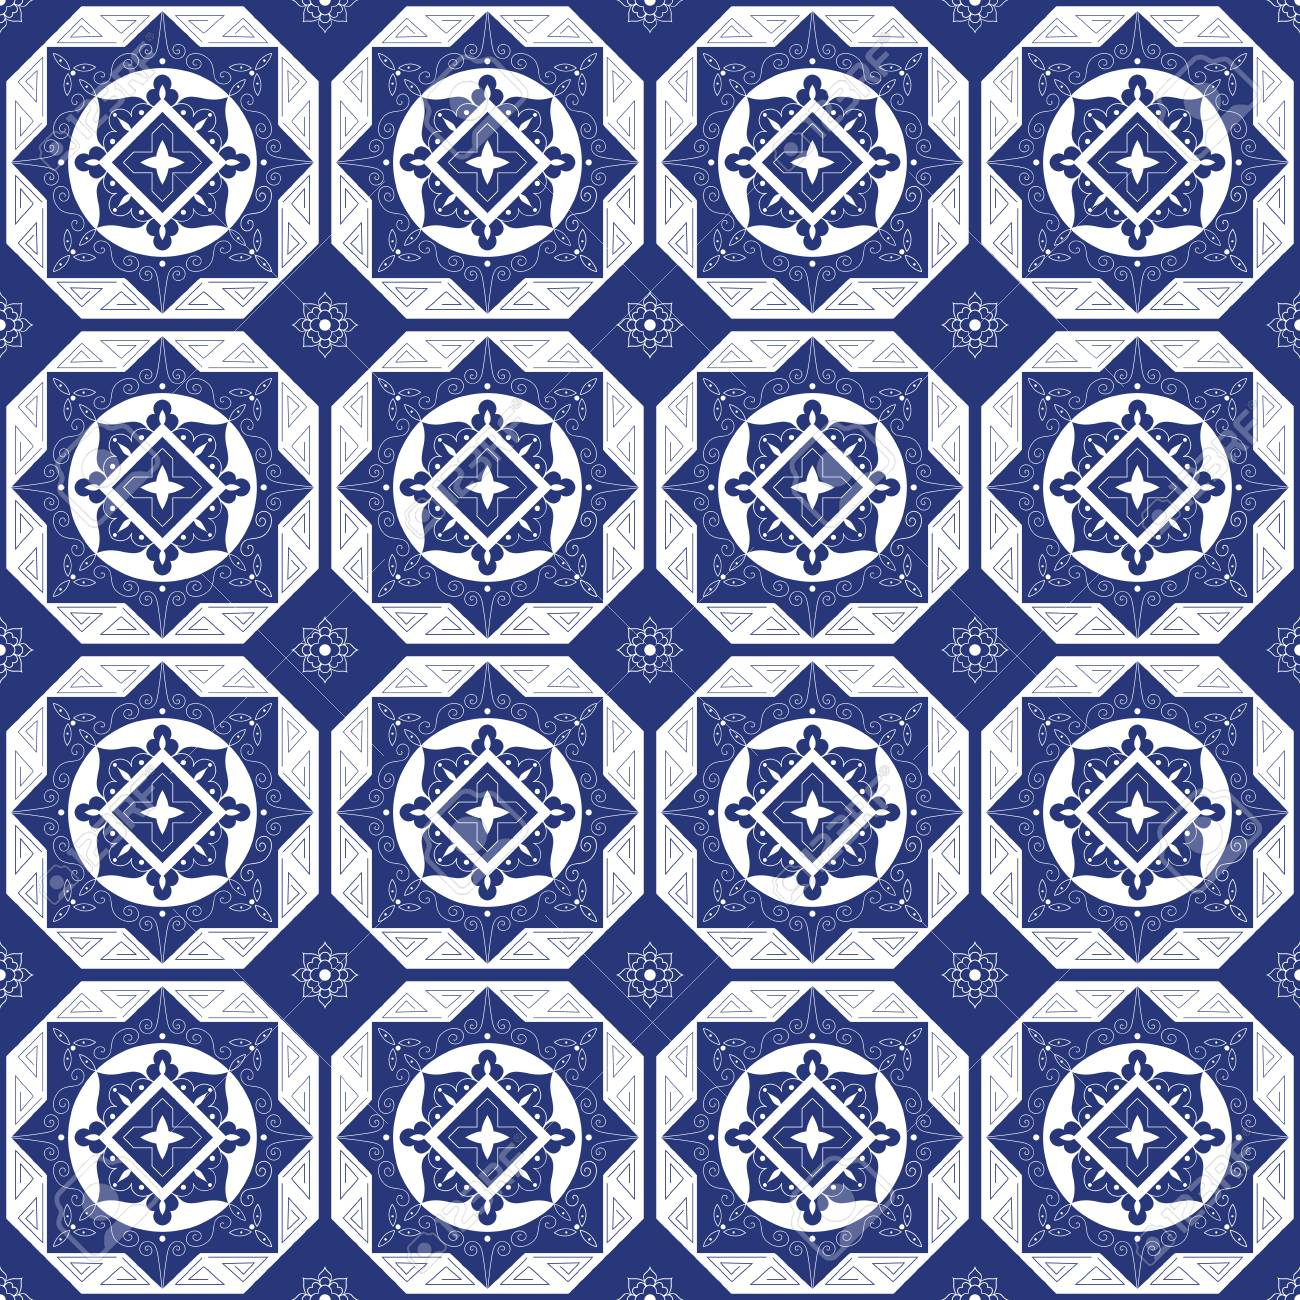 Holland blue white porcelain tile floor - mosaic tiled pattern. Abstract geometric seamless background. Ornament fabric, ceramic or surface design pattern vector. - 91368434